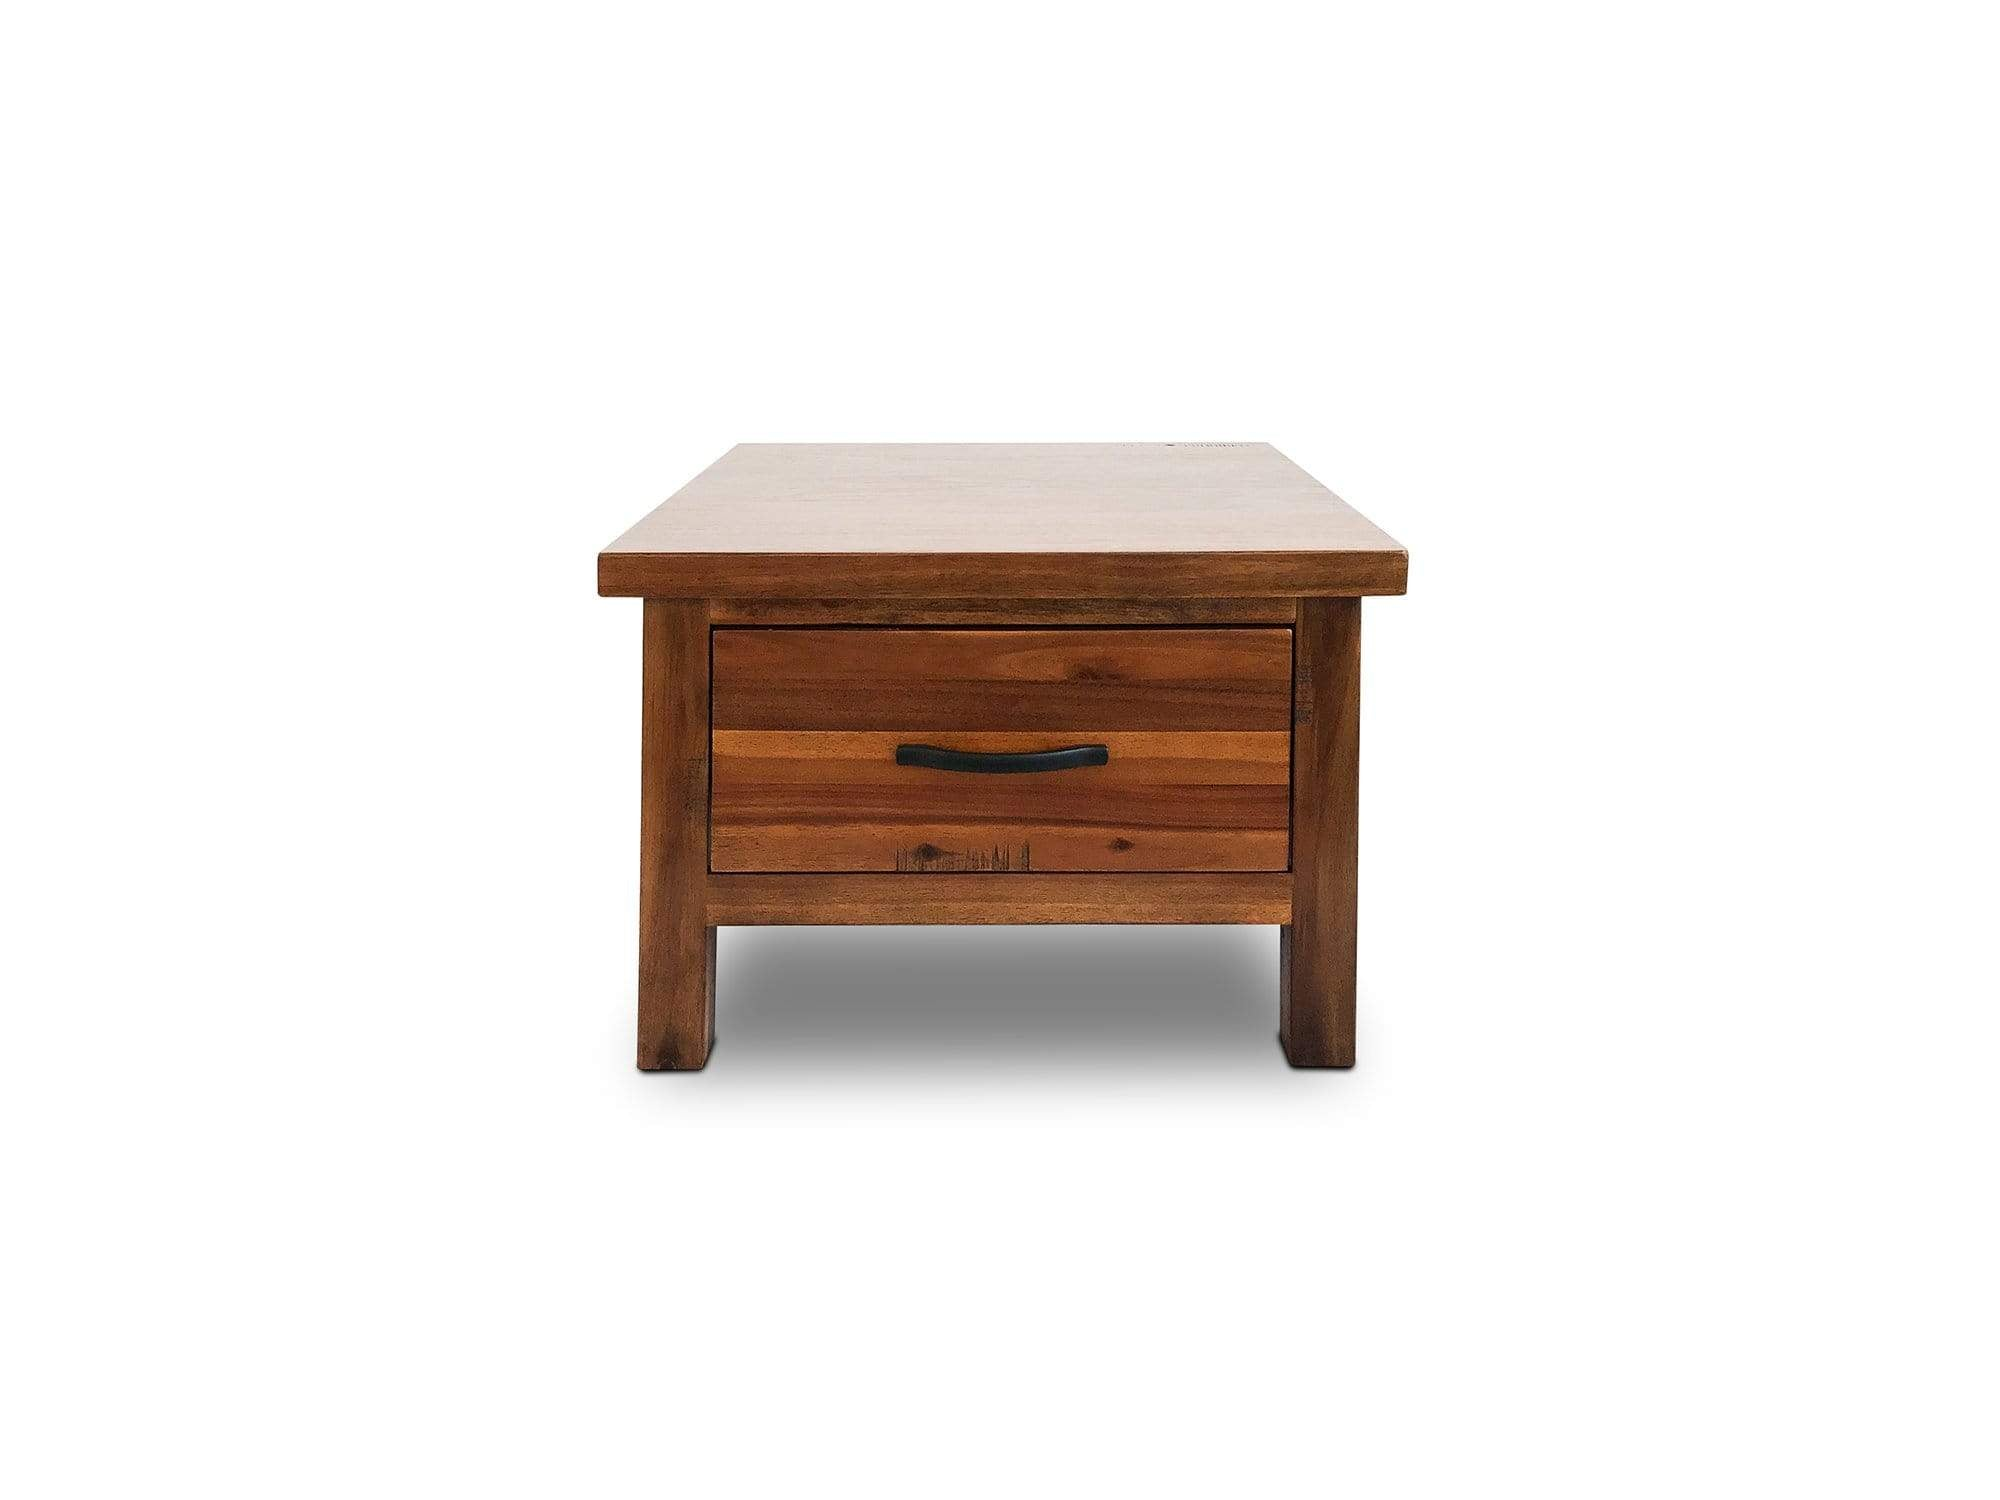 Peyton Timber Lamp Table with Drawer